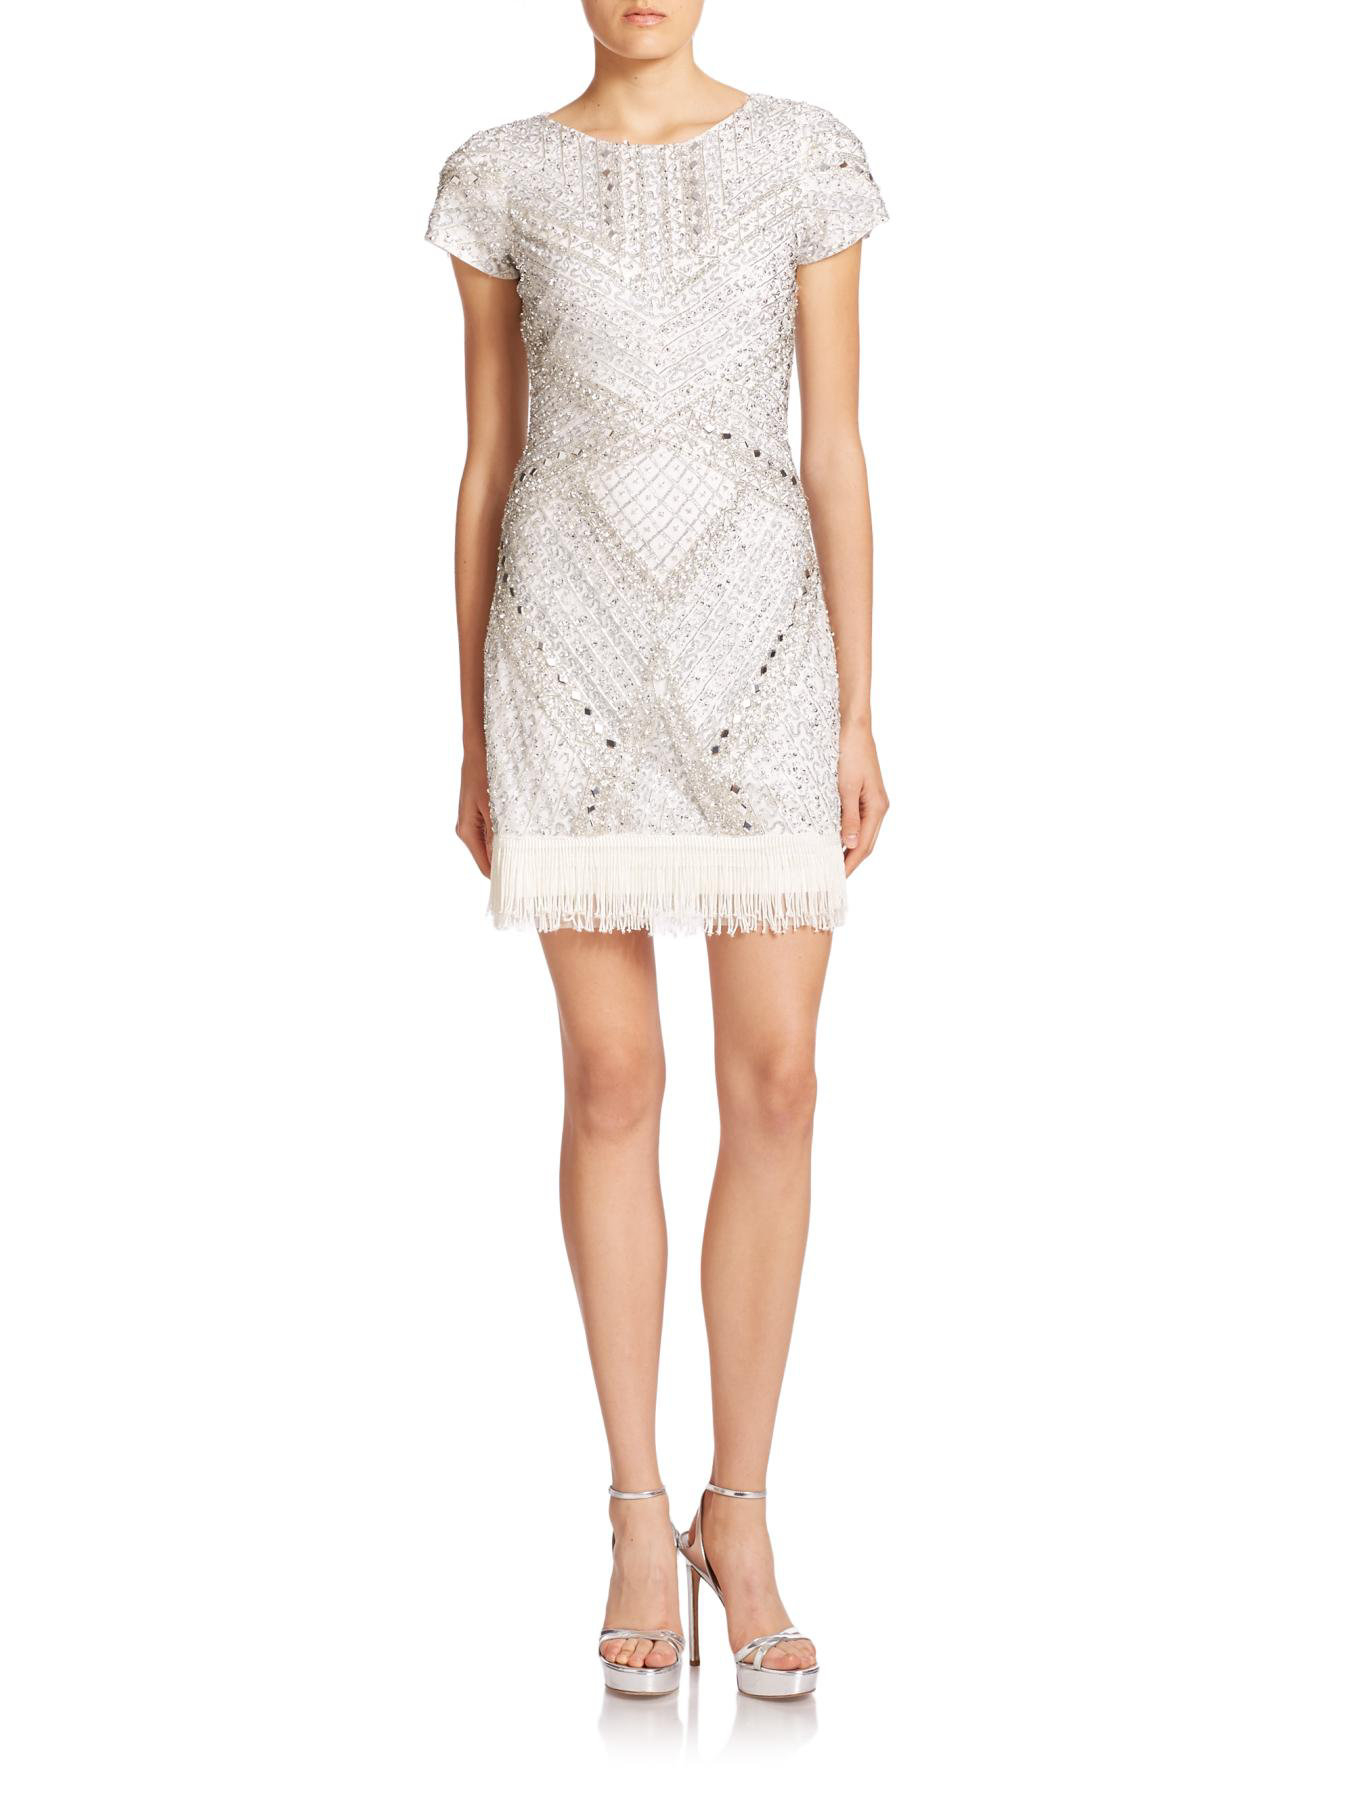 065a3522d227 Gallery. Previously sold at: Saks Fifth Avenue · Women's White Cocktail  Dresses